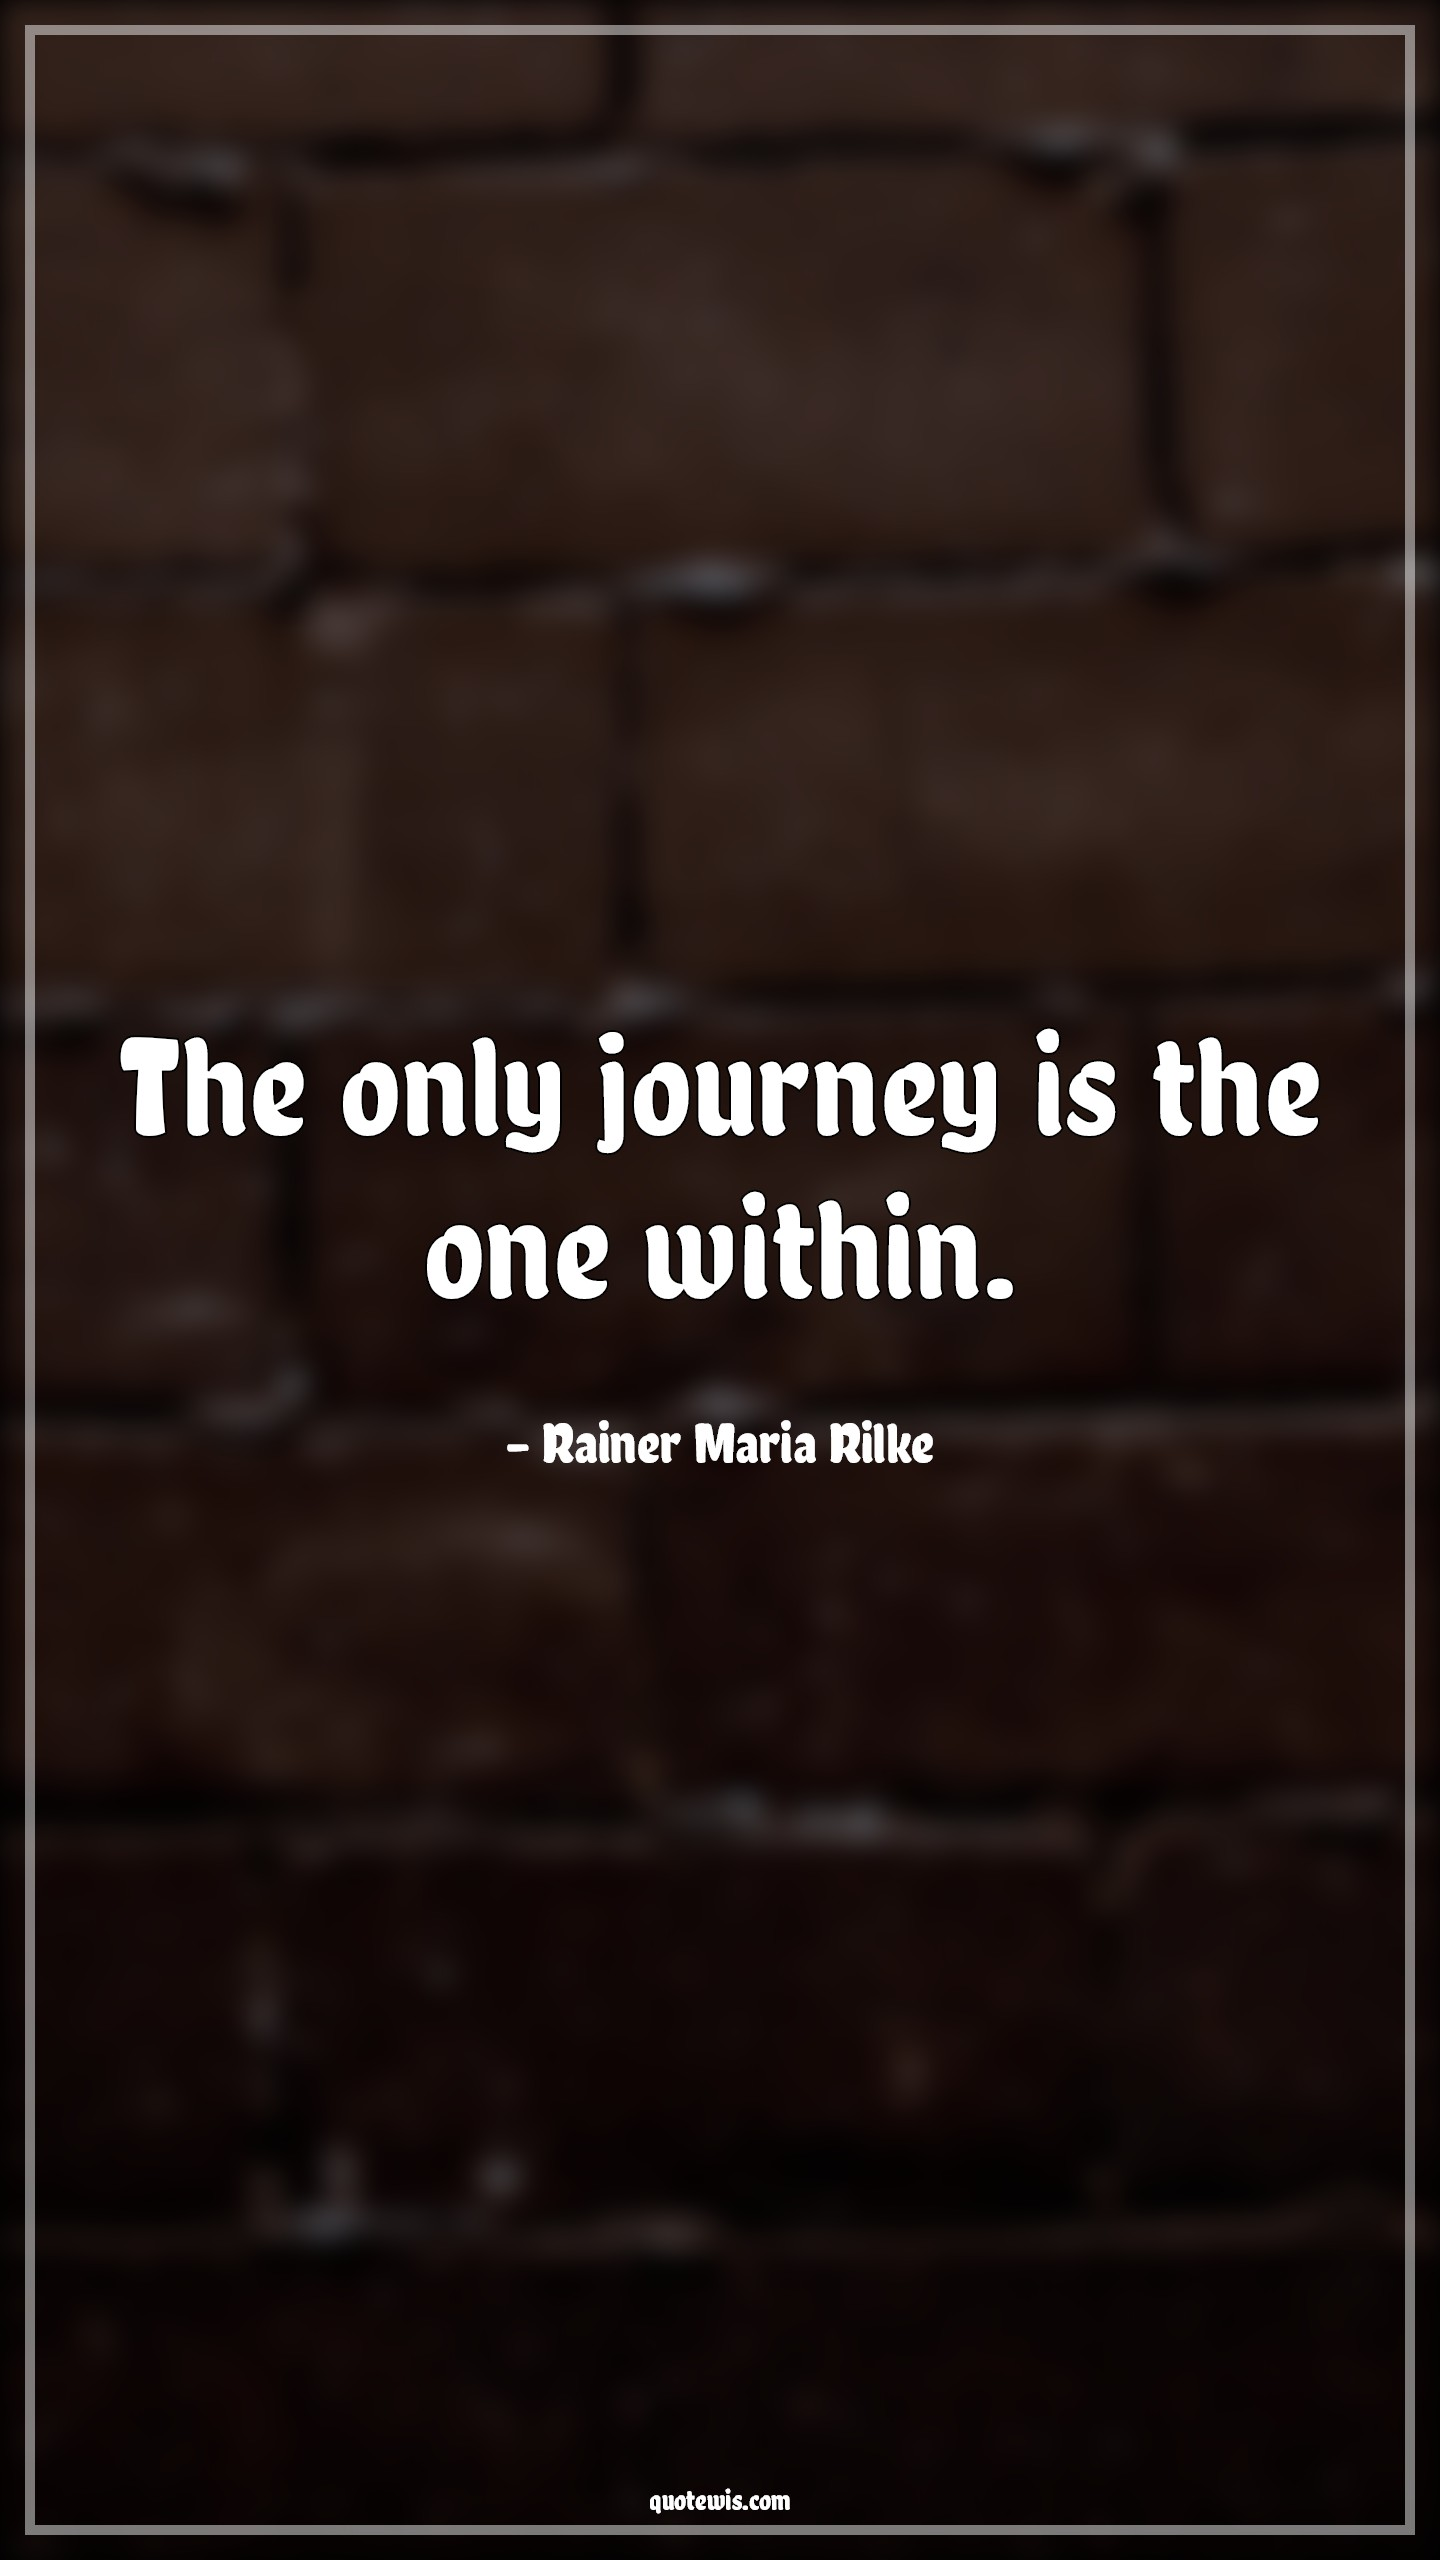 The only journey is the one within.